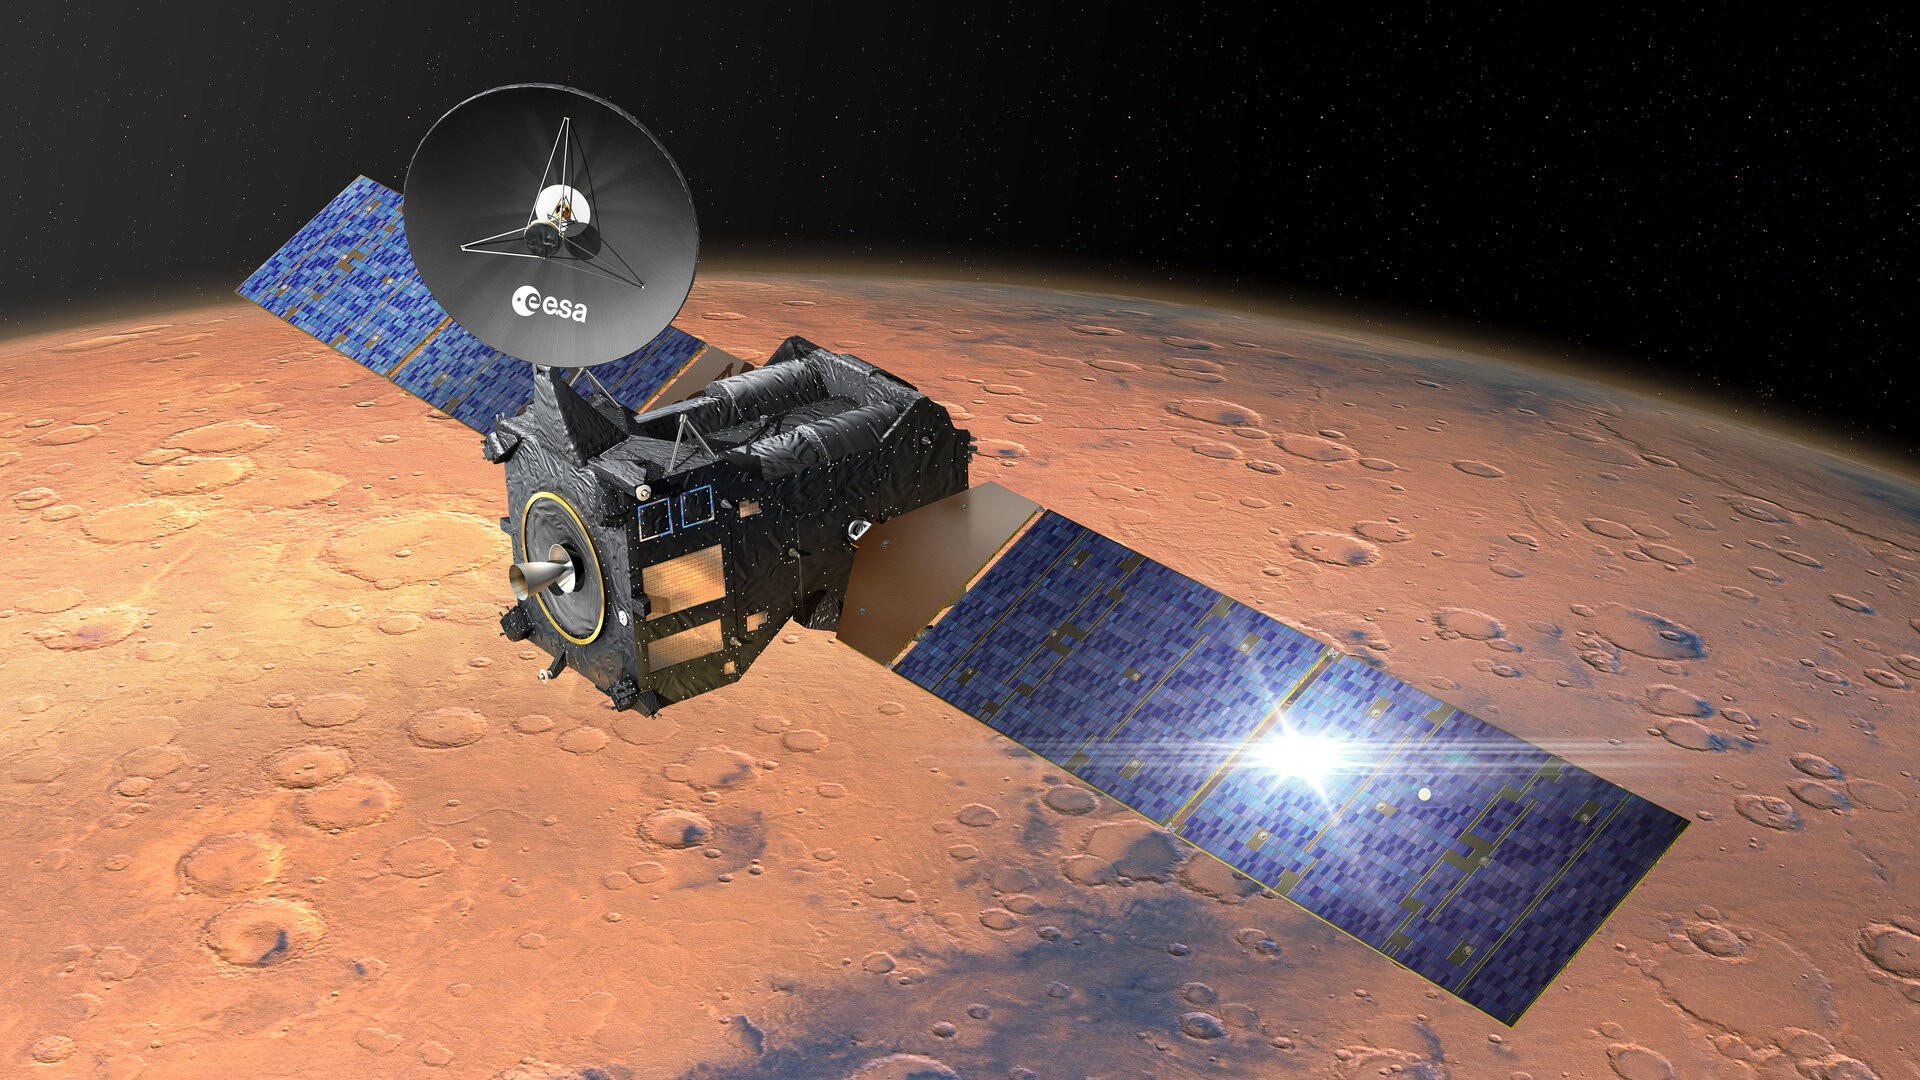 Methane Spotted near the Martian Surface  Not its Atmosphere  NASA's Curiosity Research for Methane